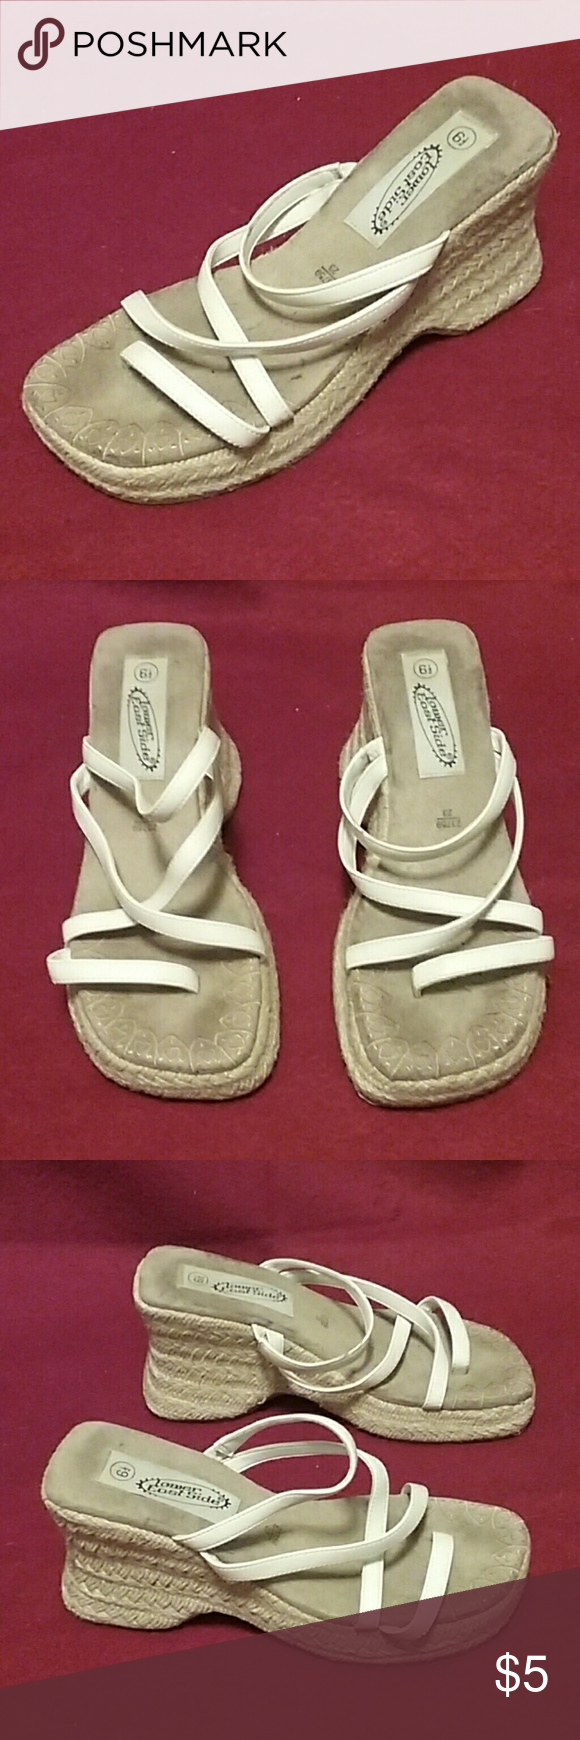 White wedge shoes, size 6.5 White wedge shoes, size 6.5 Lower East Side Shoes